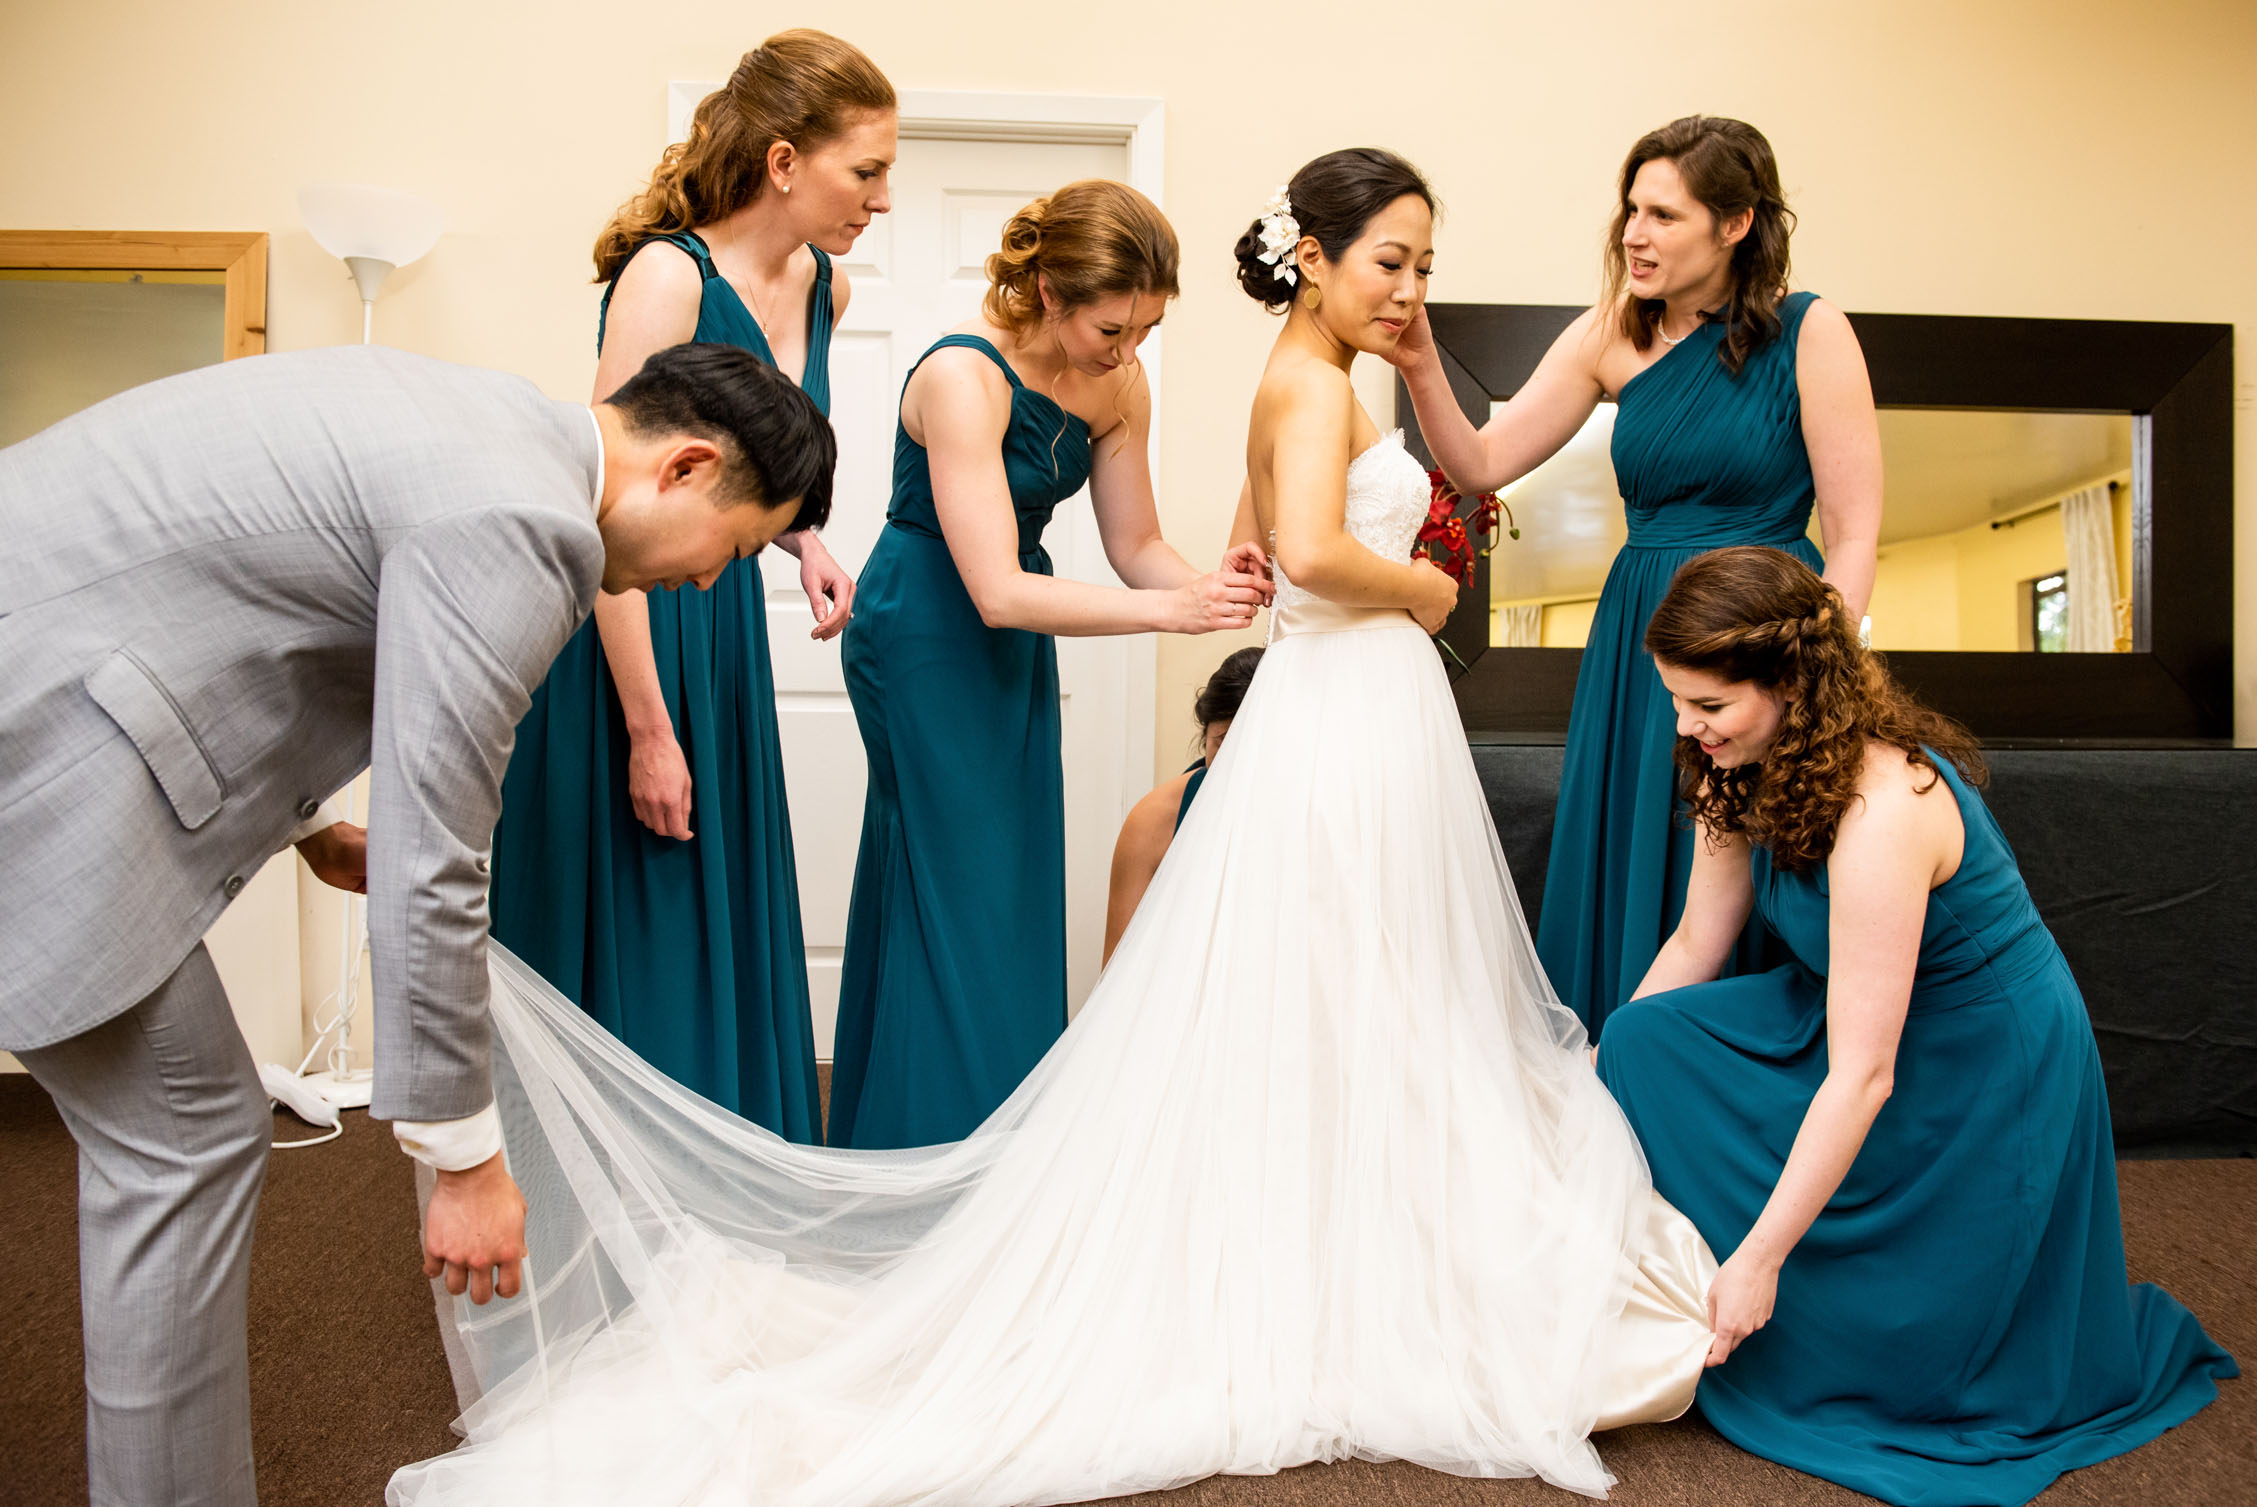 Four bridesmaids and bridesman help the bride get ready